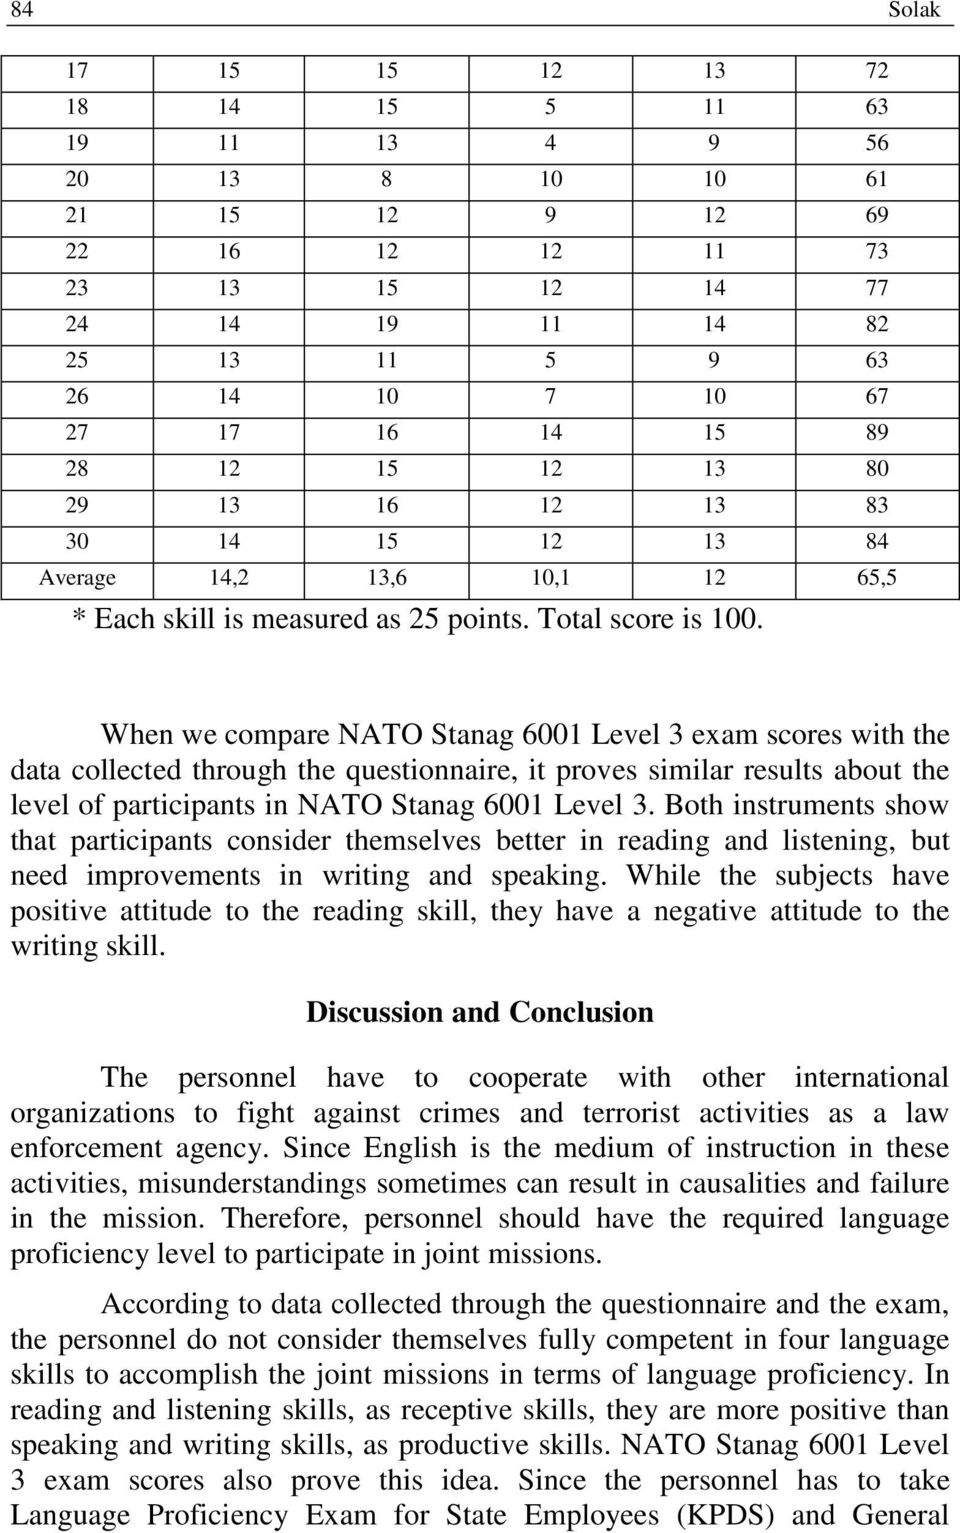 When we compare NATO Stanag 6001 Level 3 exam scores with the data collected through the questionnaire, it proves similar results about the level of participants in NATO Stanag 6001 Level 3.